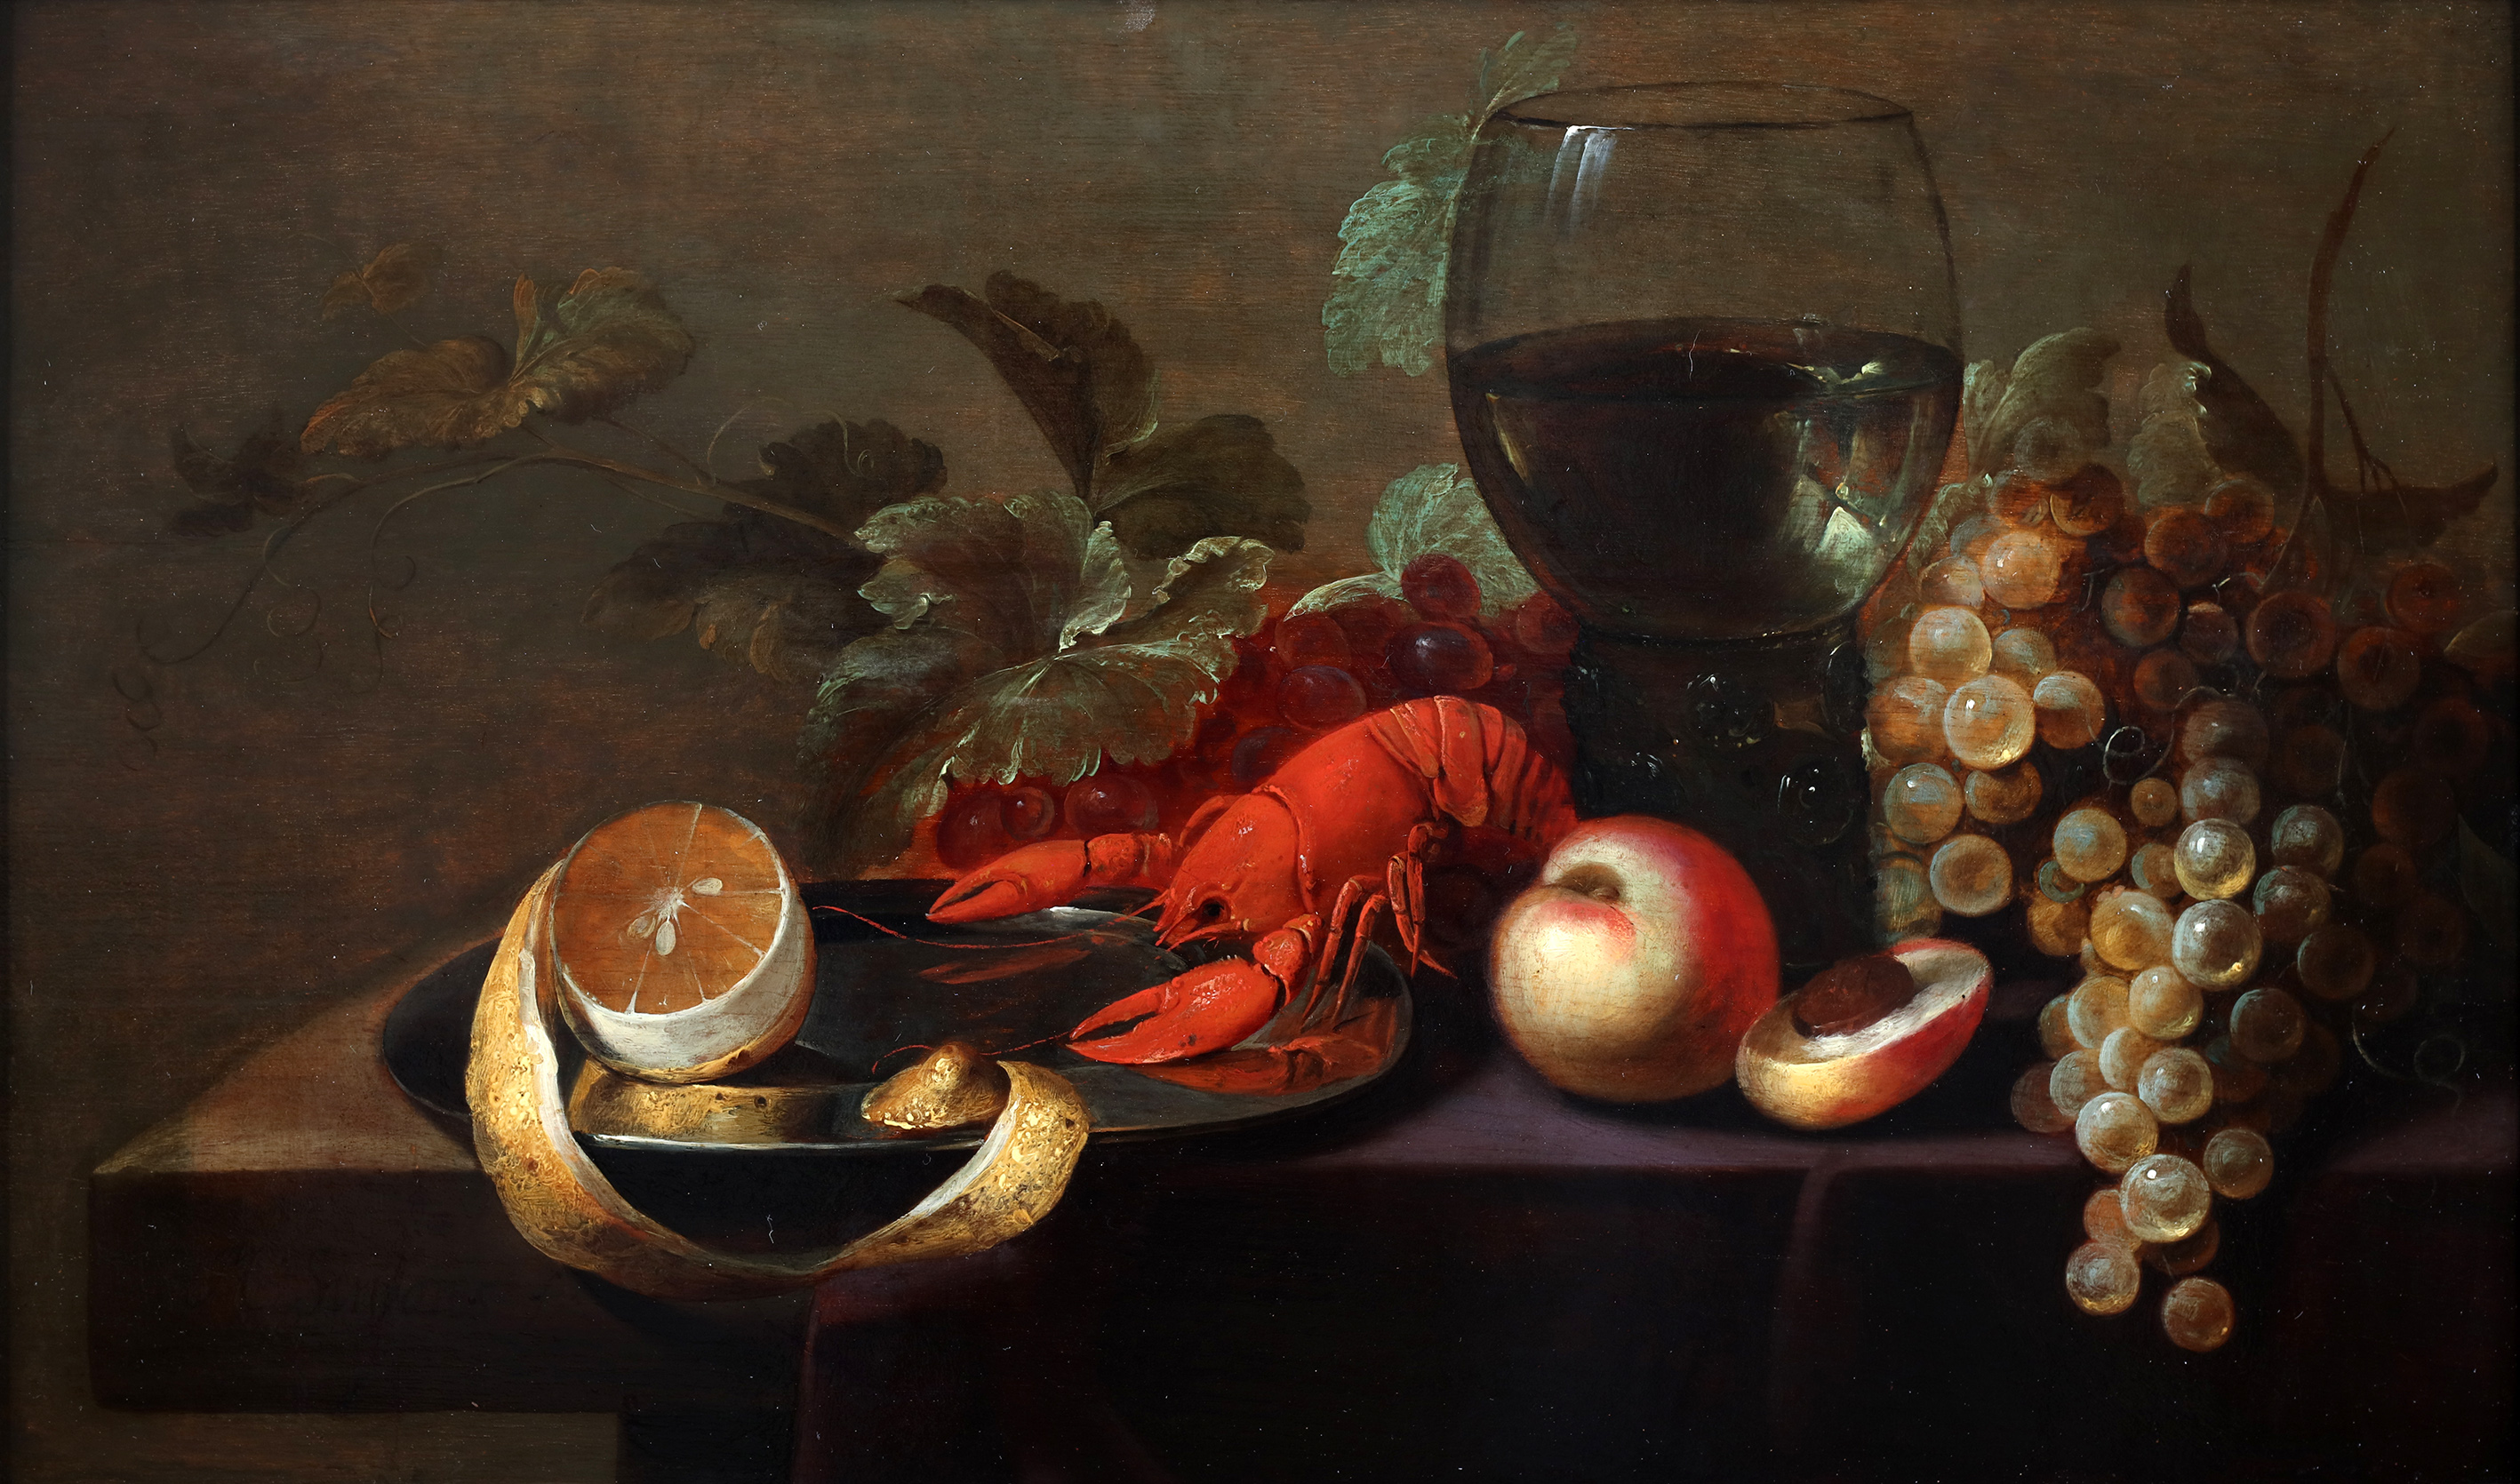 Still life with a lobster, a roomer, fruits and a peeled lemon on a tin plate